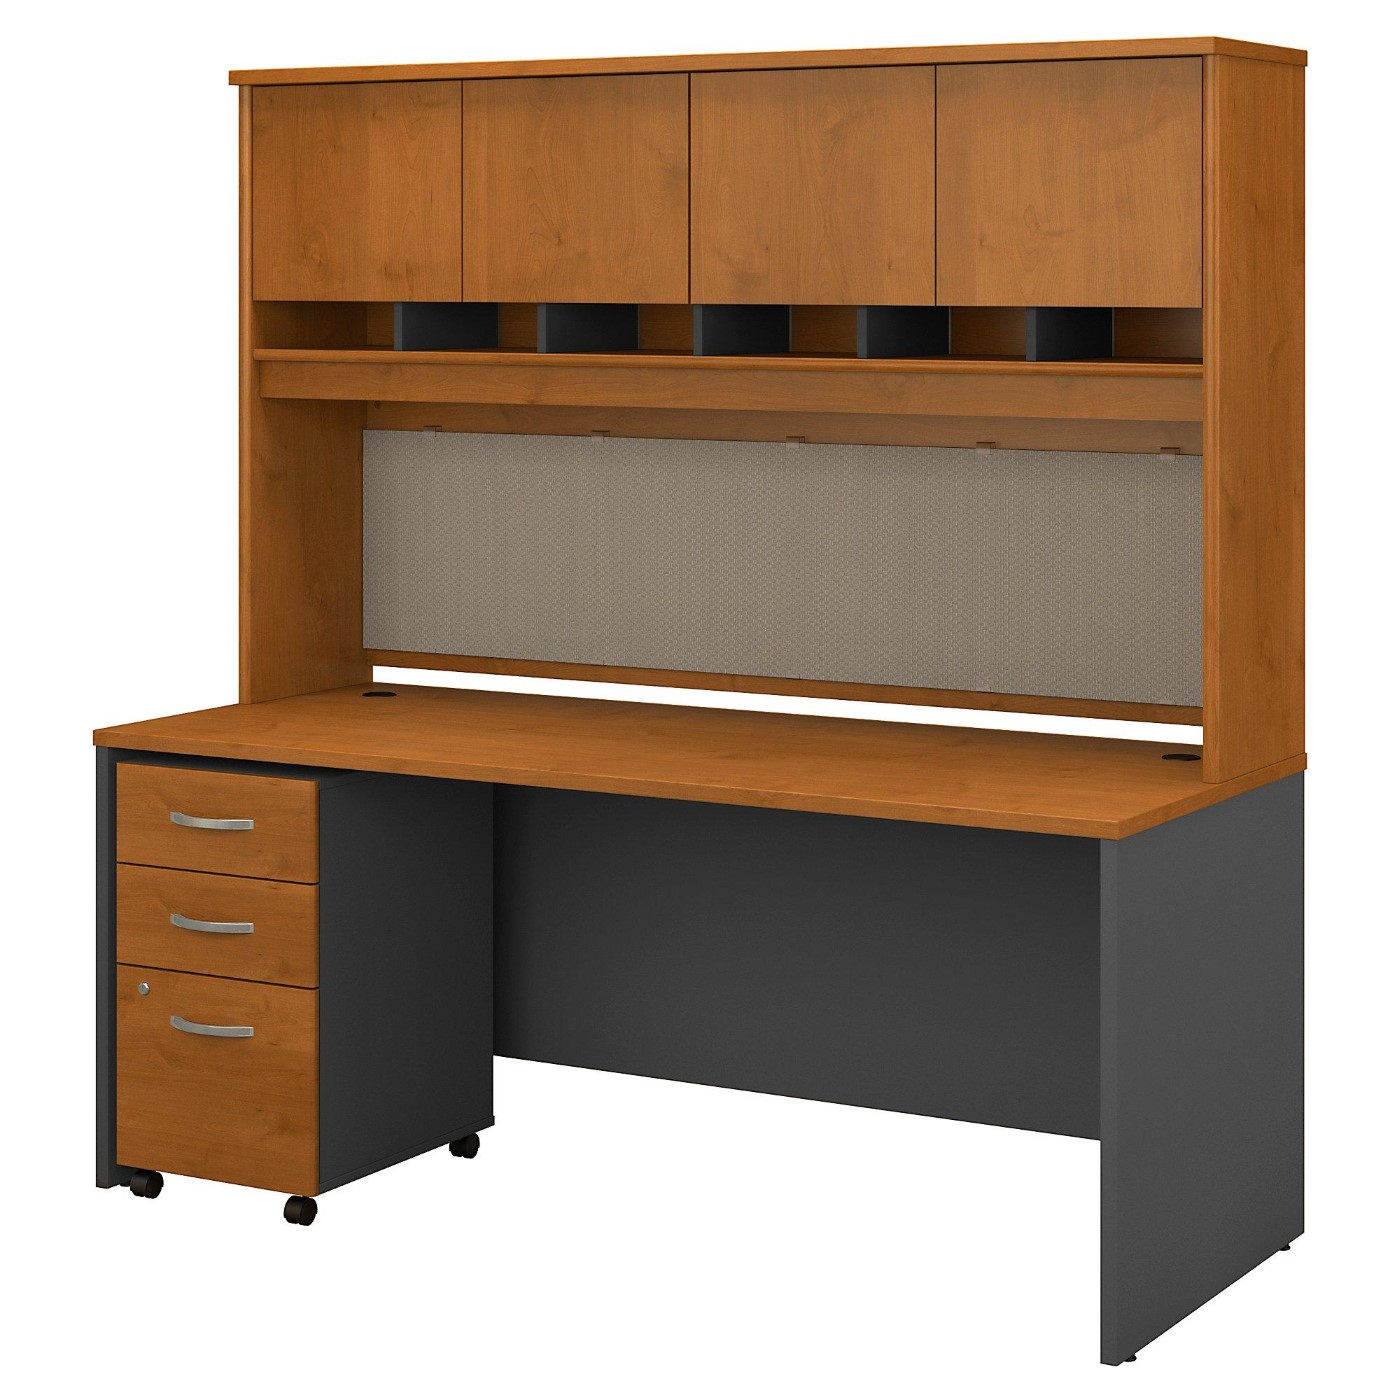 <font color=#c60><b>BUSH BUSINESS FURNITURE SERIES C 72W X 30D OFFICE DESK WITH HUTCH AND MOBILE FILE CABINET. FREE SHIPPING</font></b>